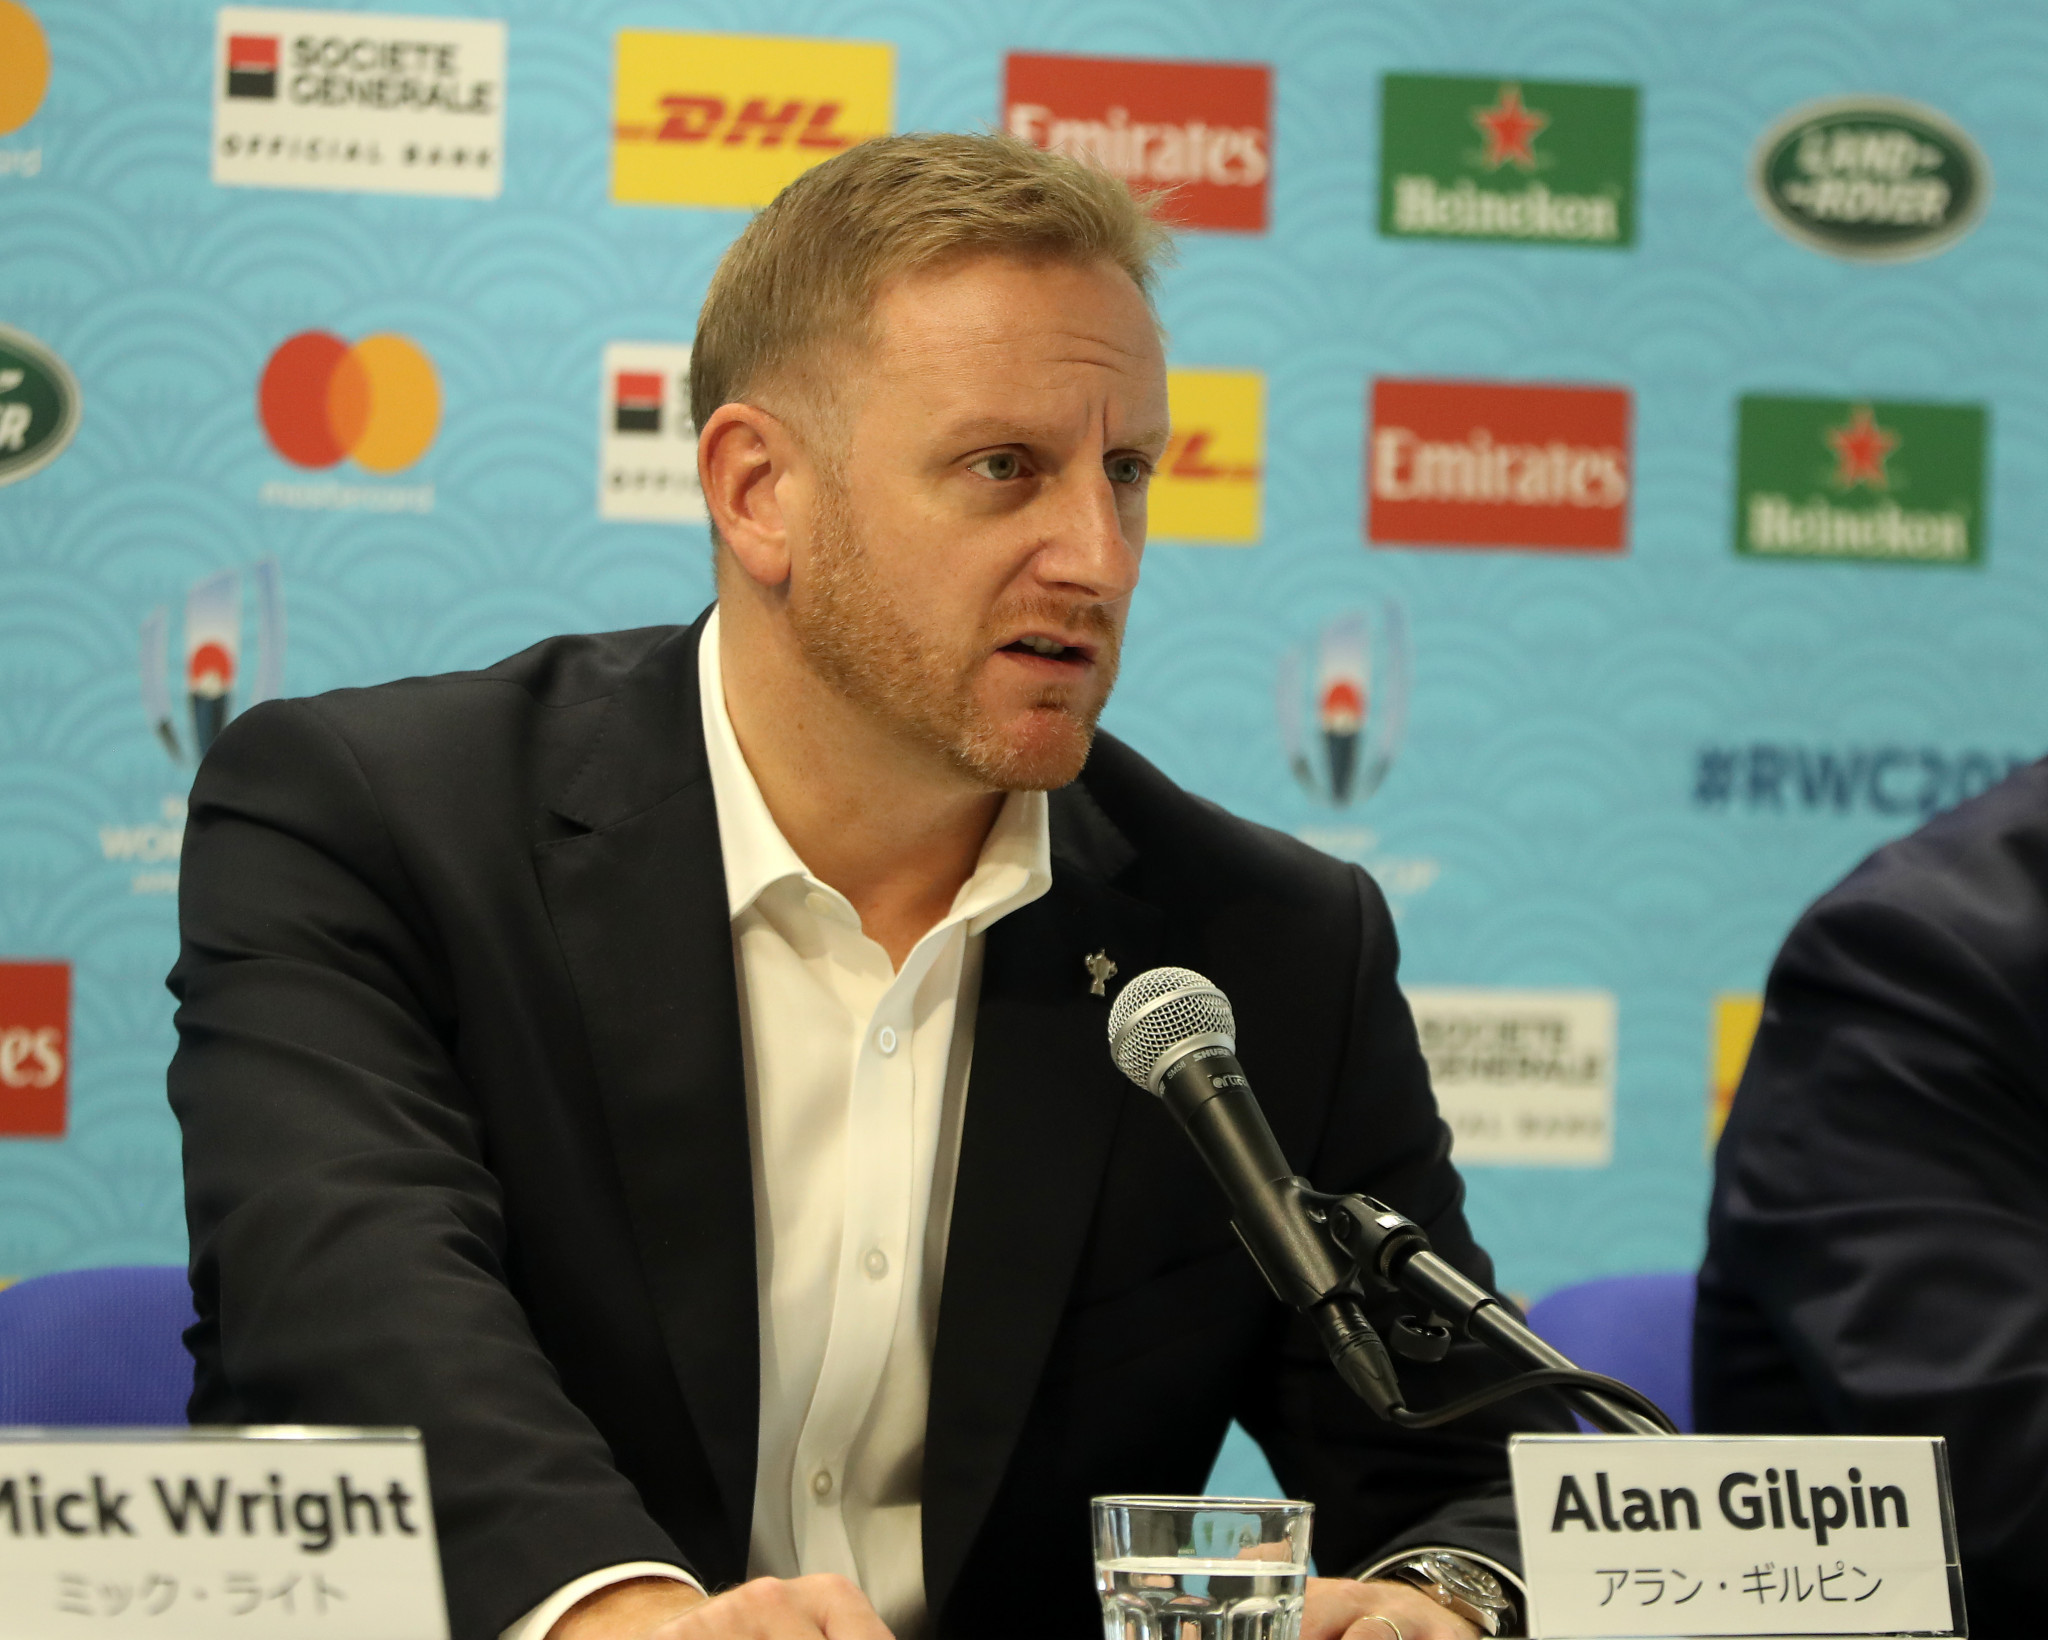 Gilpin appointed World Rugby chief executive on permanent basis